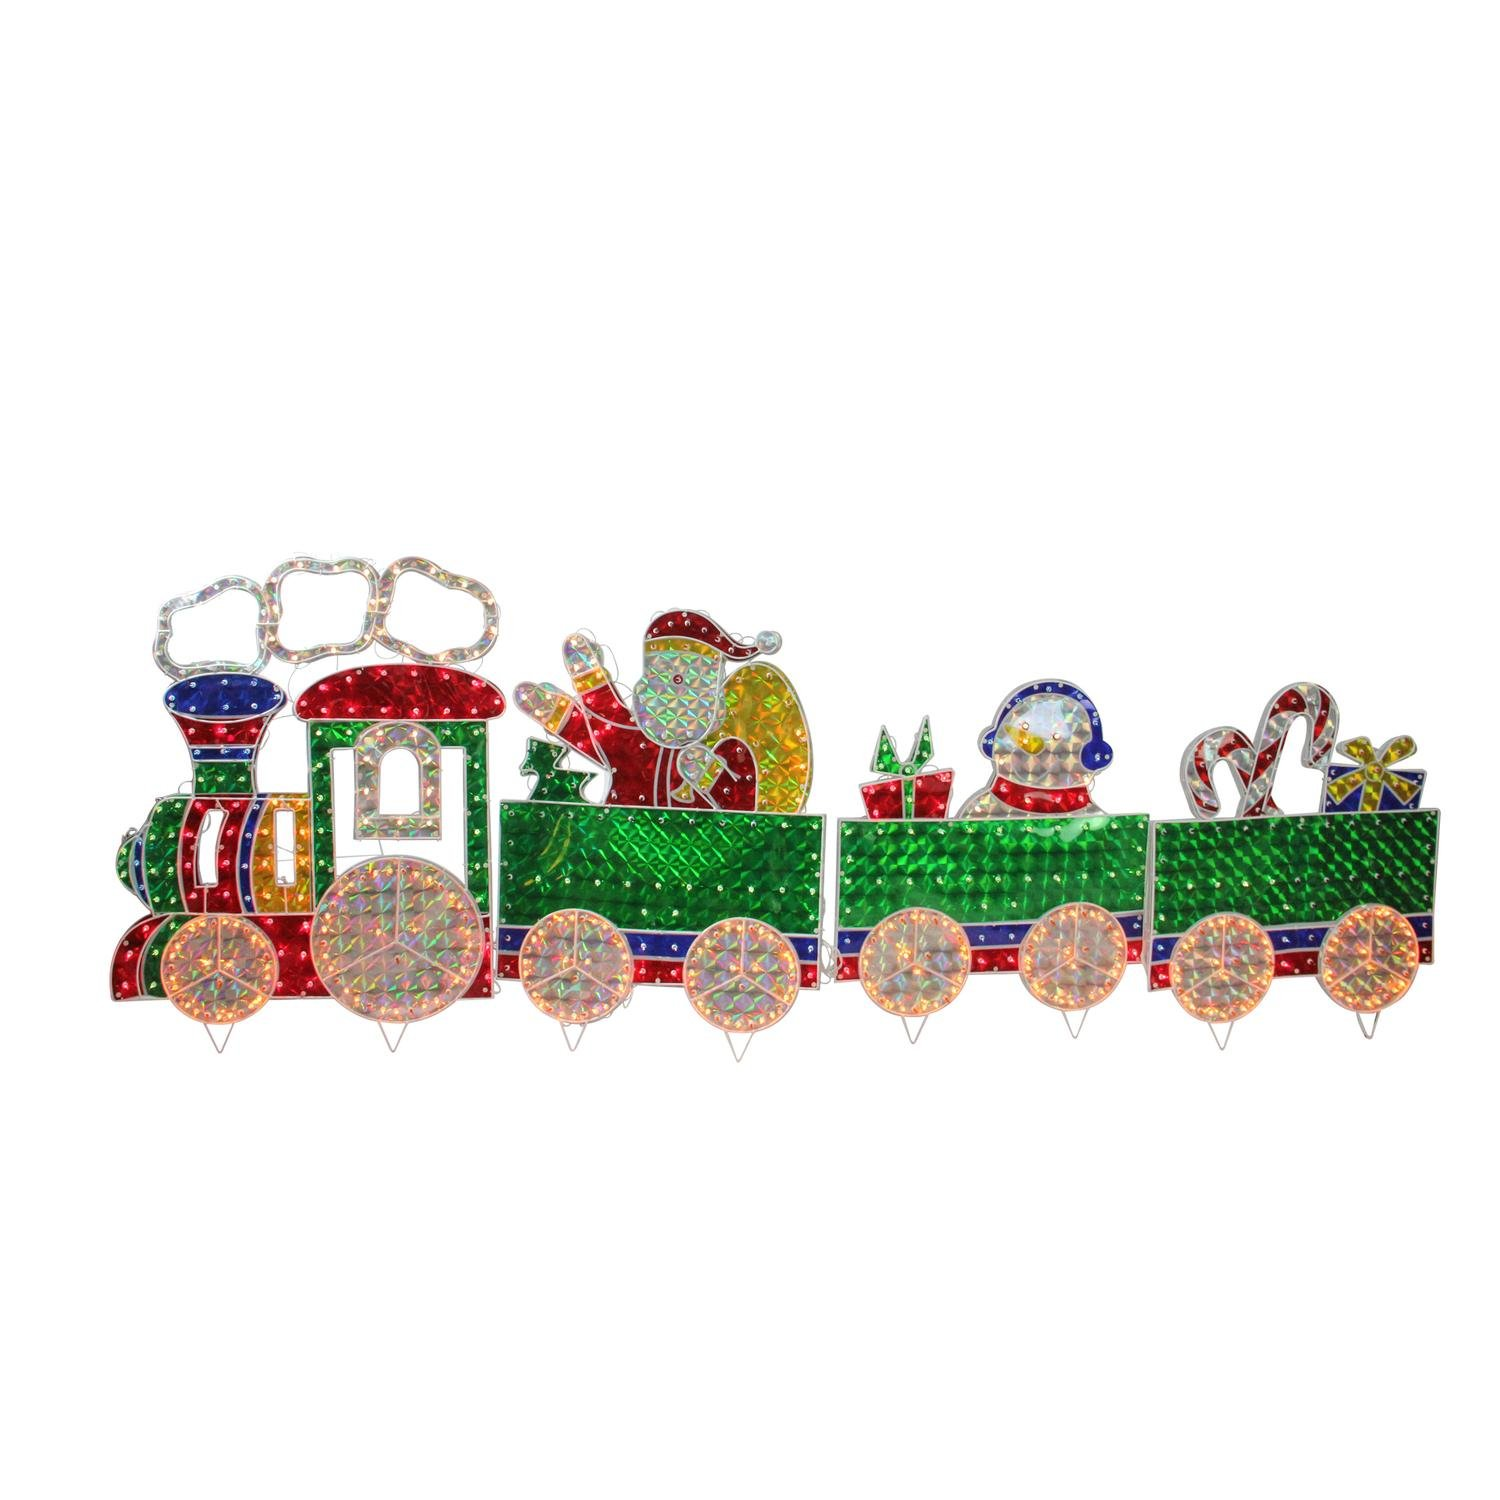 LB International 4-Piece Holographic Lighted Motion Train Set Christmas Yard Art Decoration 8.5'